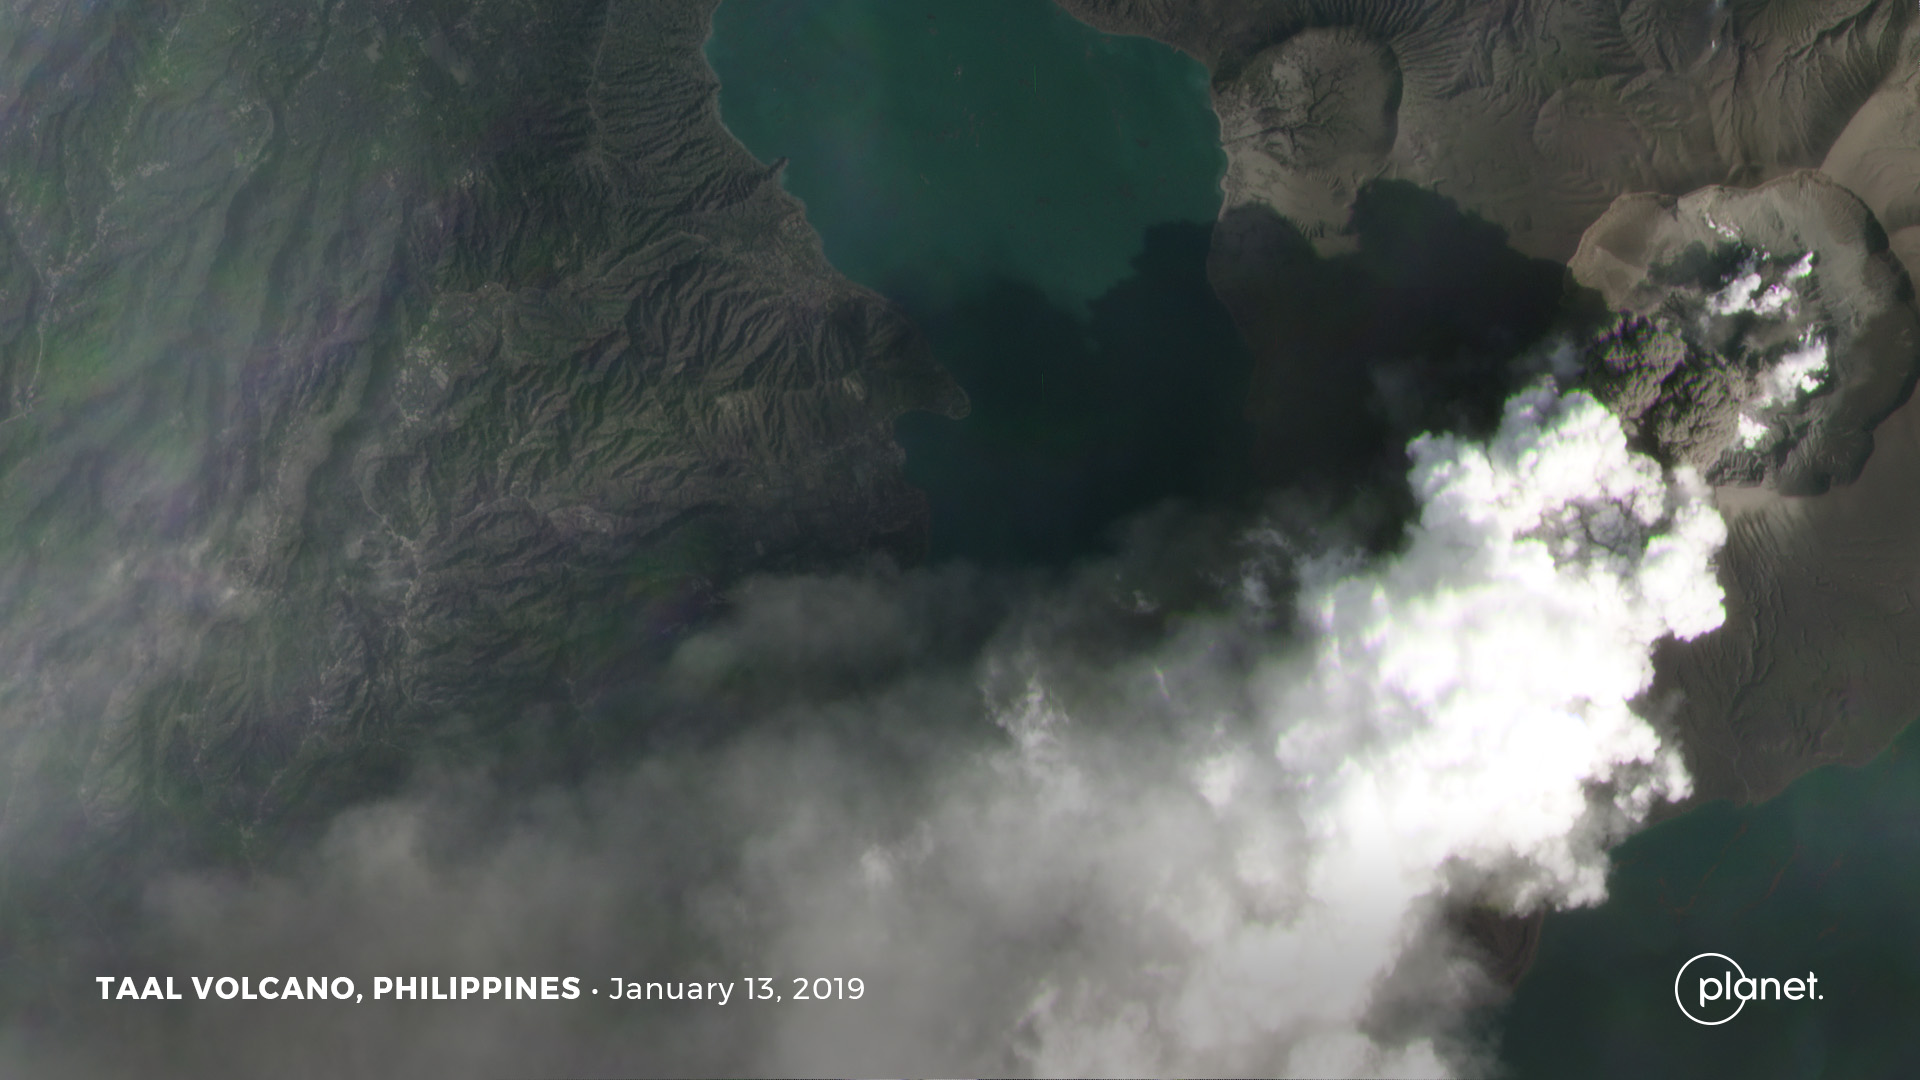 Planet imagery shows ash plumes shooting almost a half mile upward as the Taal volcano erupts. © 2020, Planet Labs Inc. All Rights Reserved.